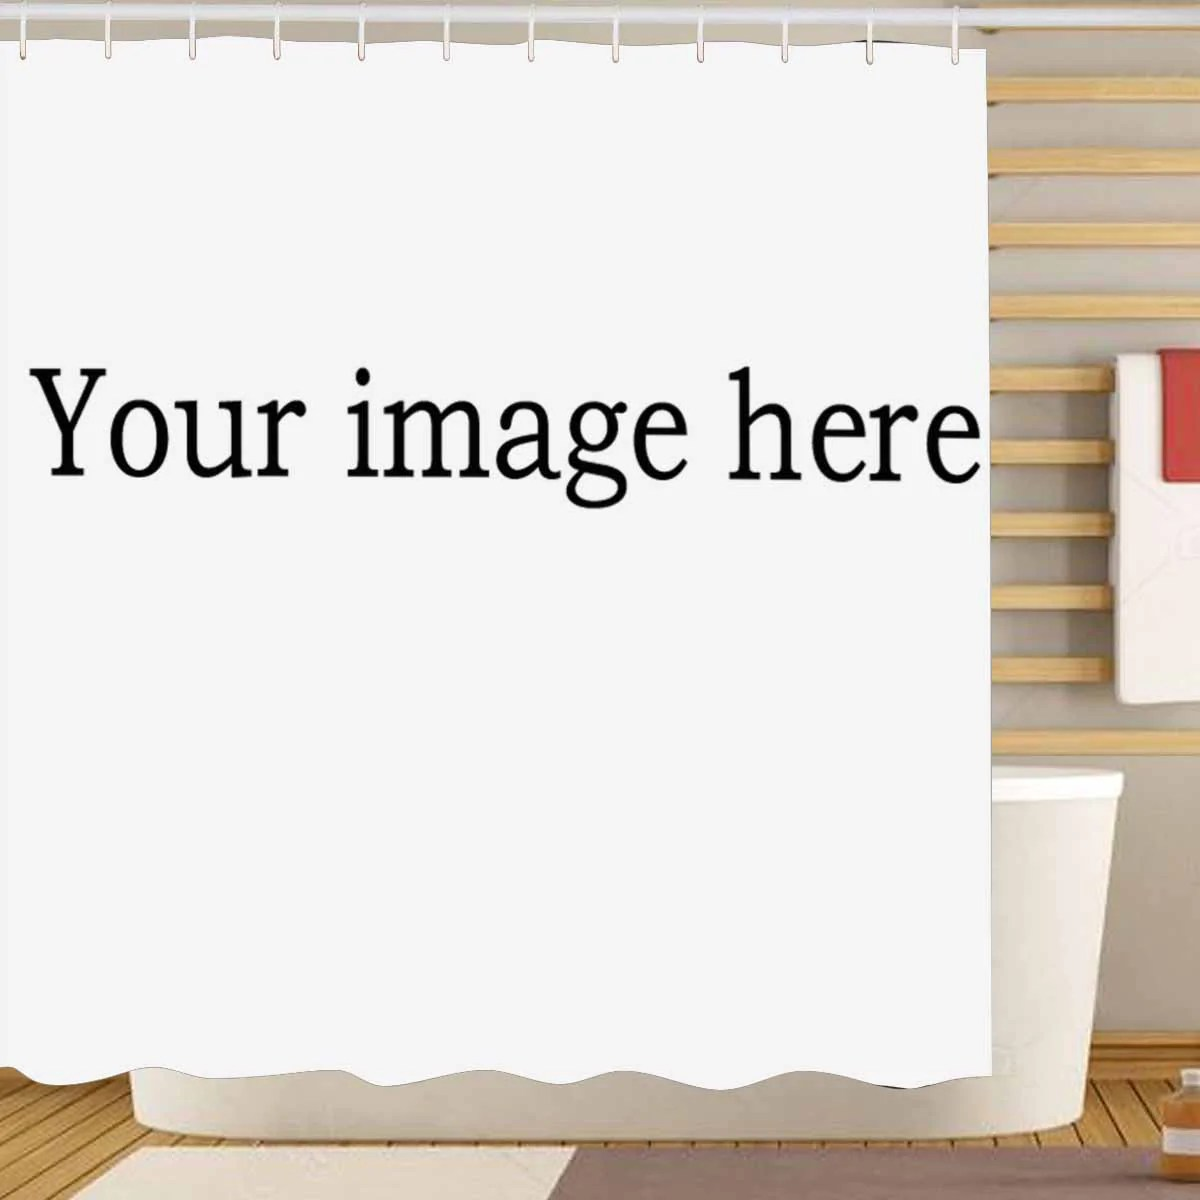 custom shower curtains upload your image to customize